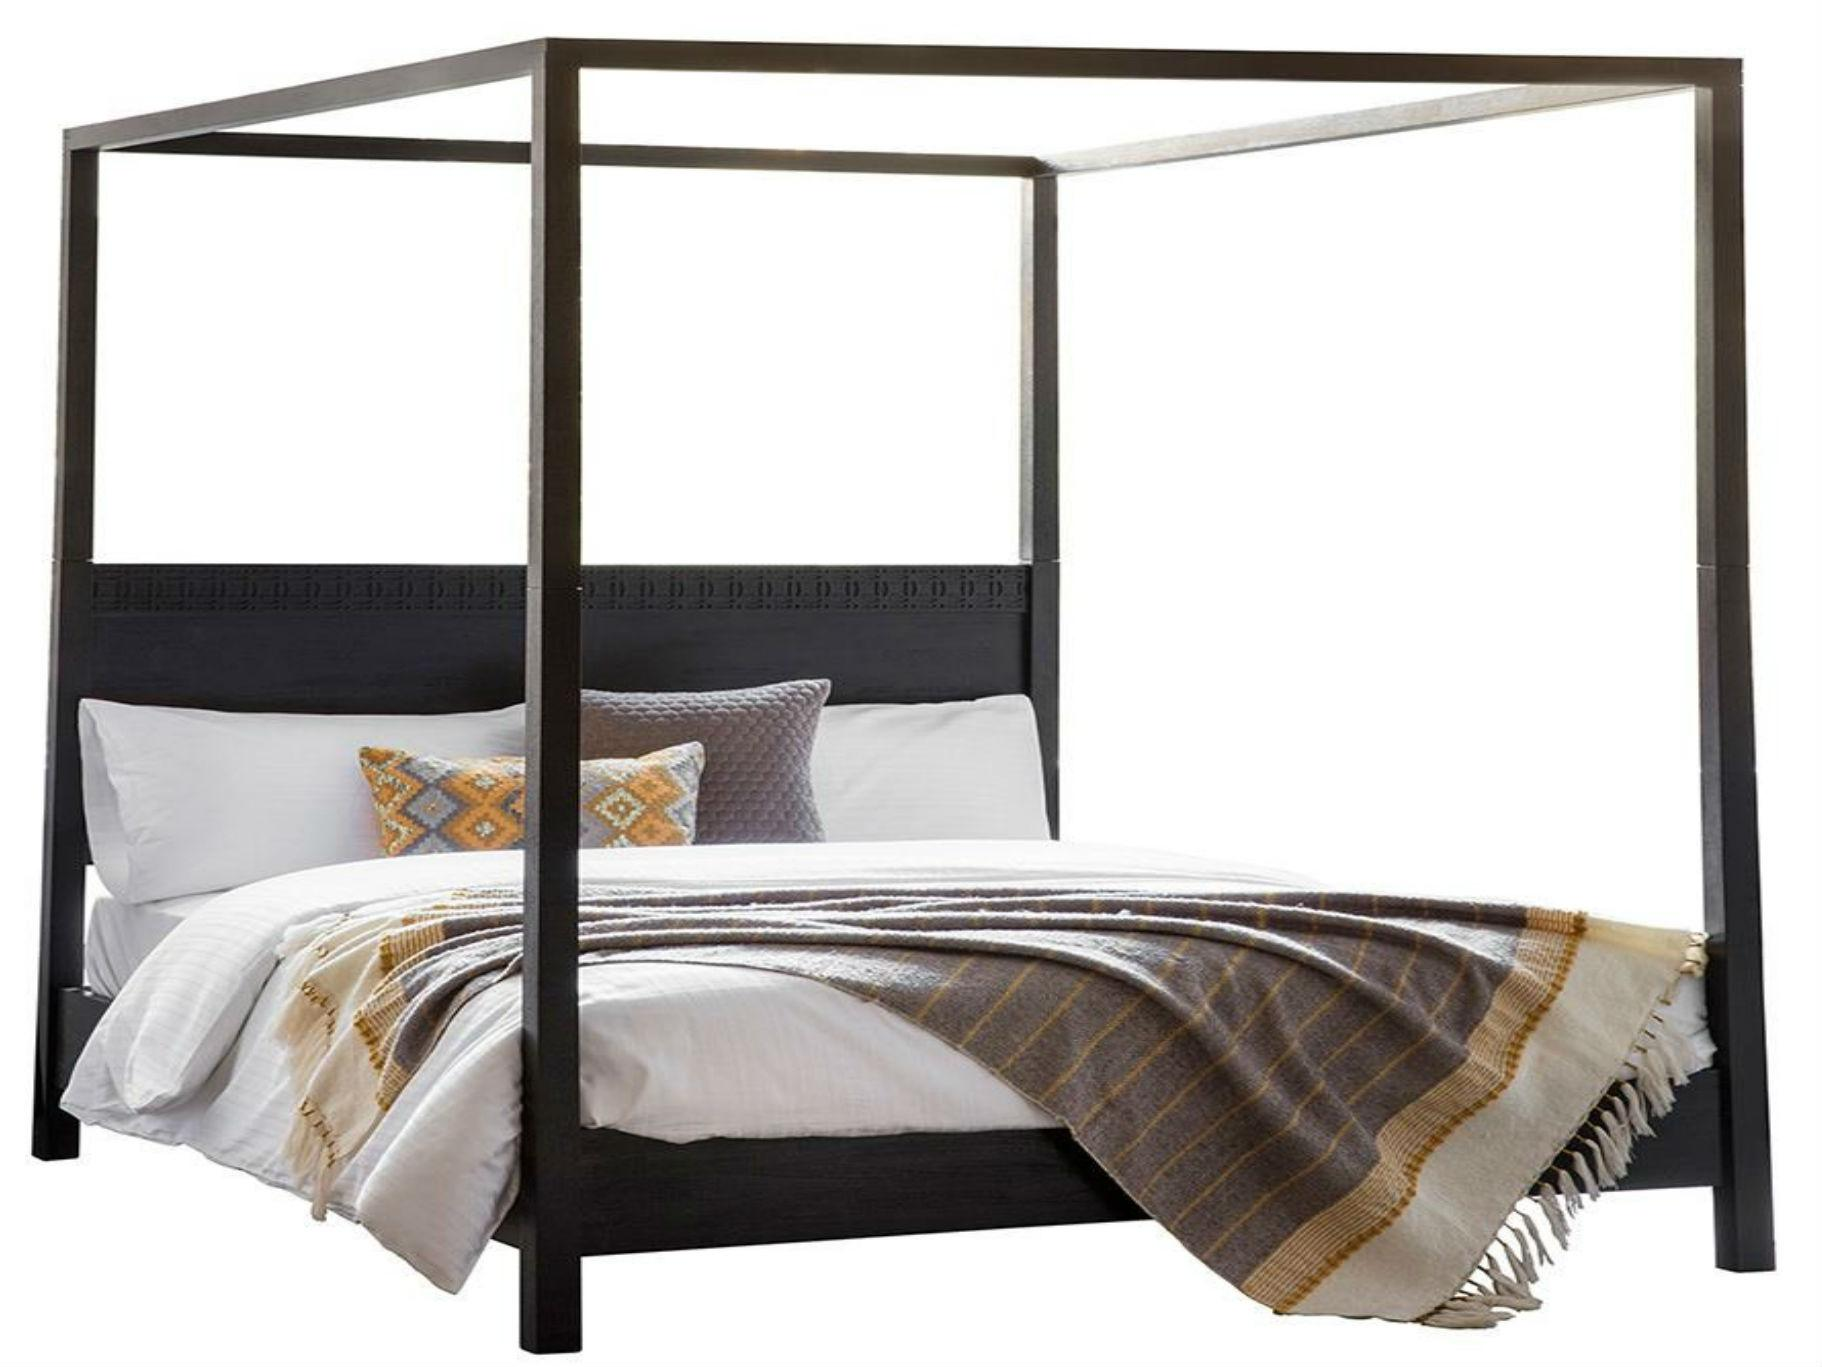 bef1775c84198 Houseology Collection Safari Boutique king bed  from £959